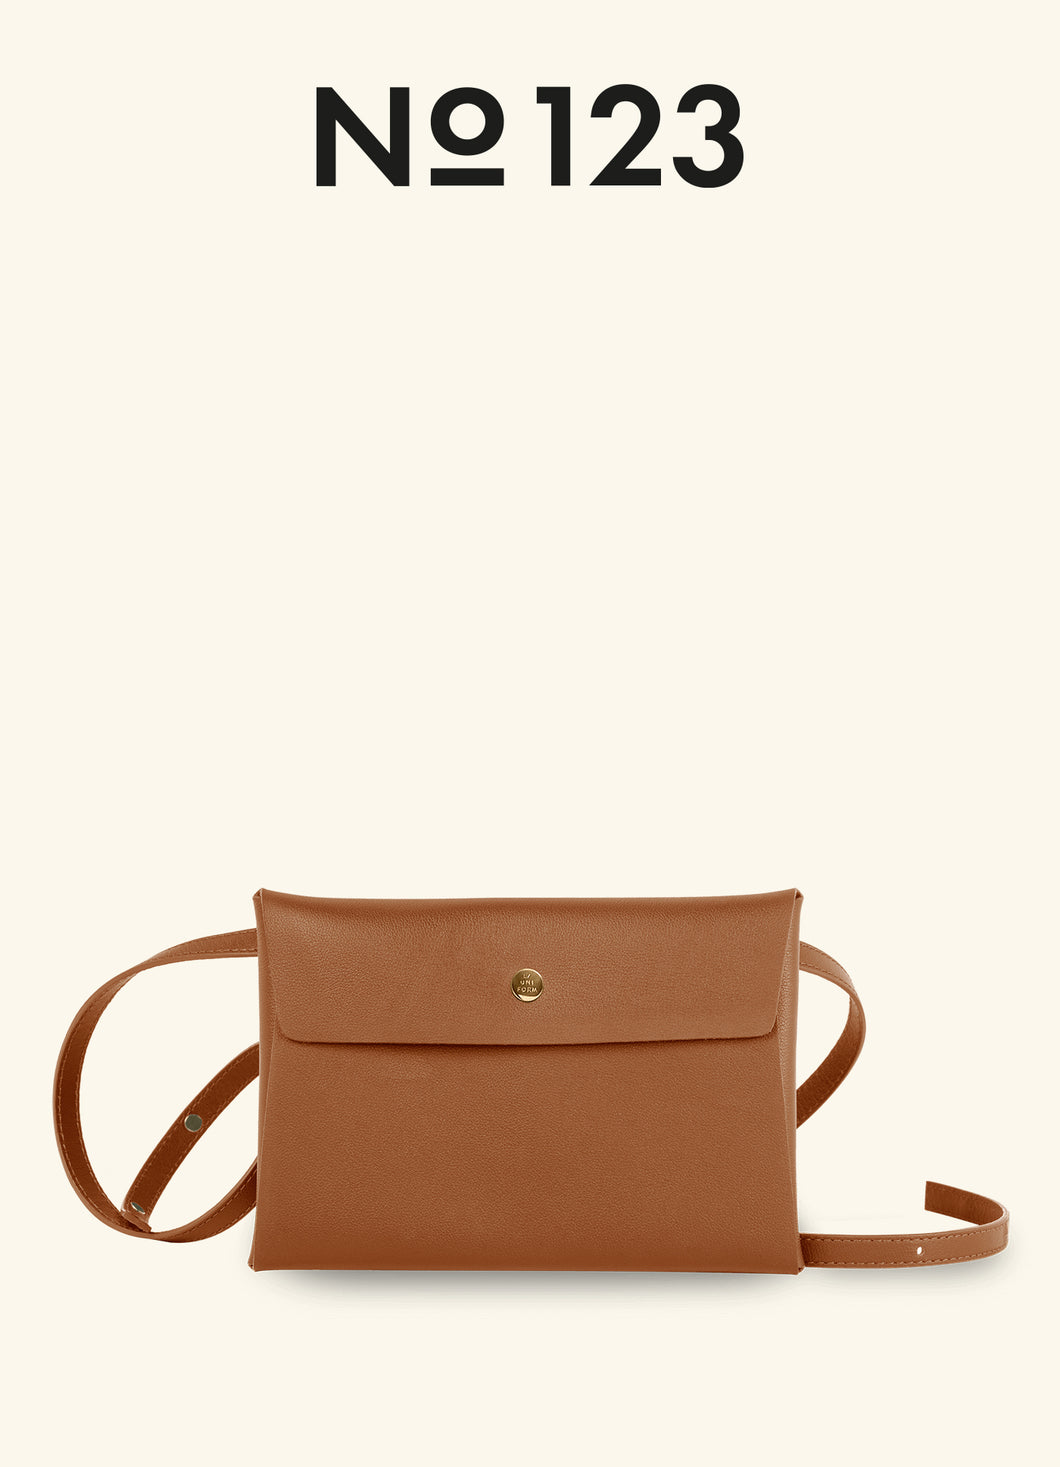 LEATHER ENVELOPE WITH STRAPS